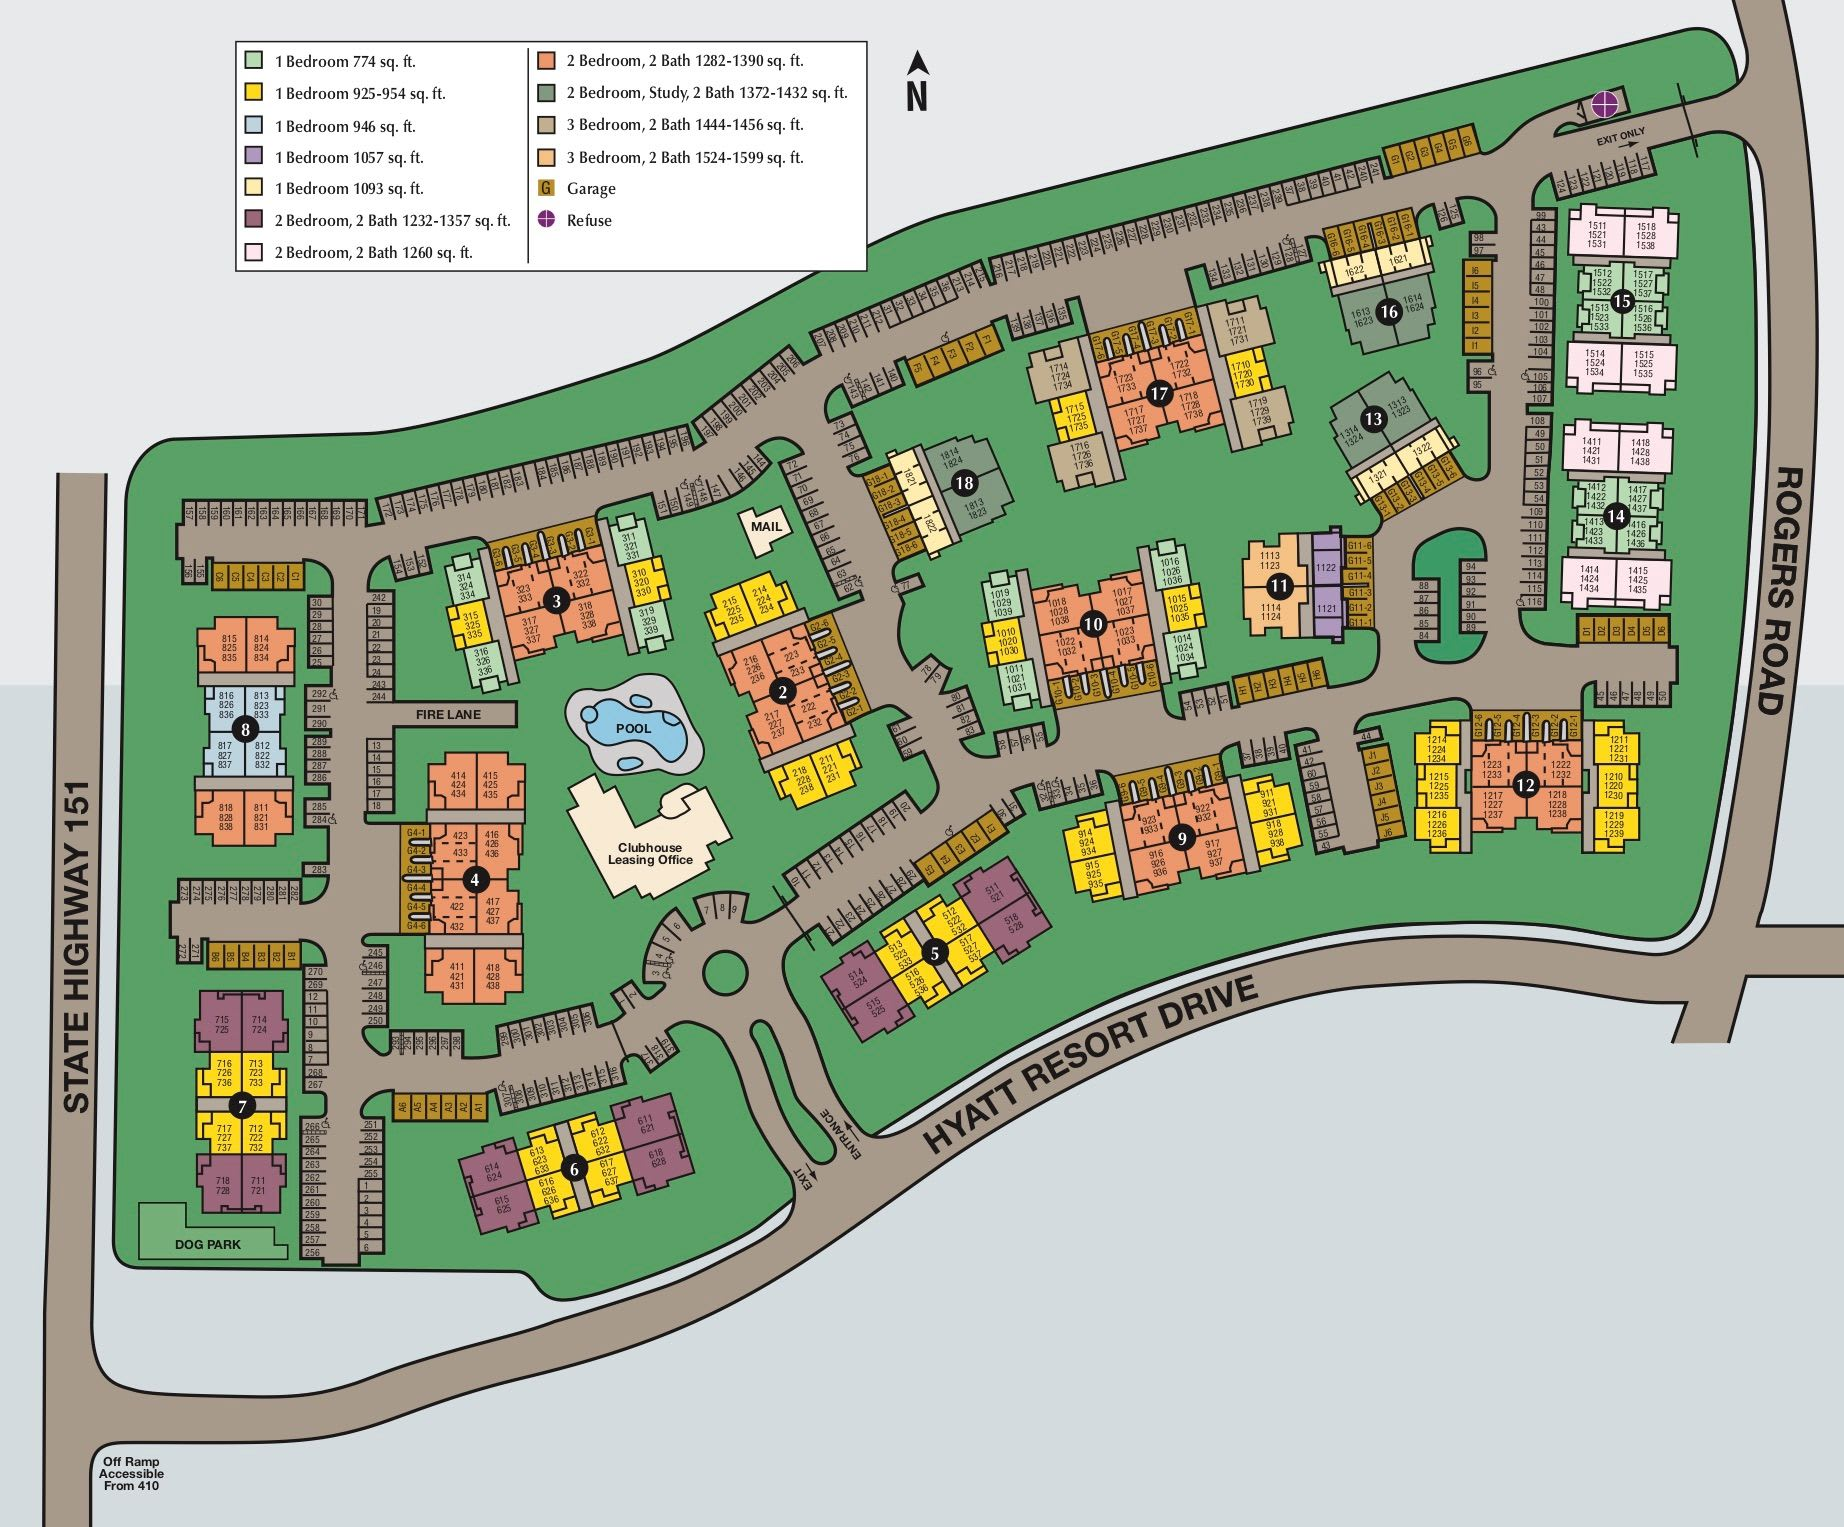 Site map of The Lodge at Westover Hills in San Antonio, TX